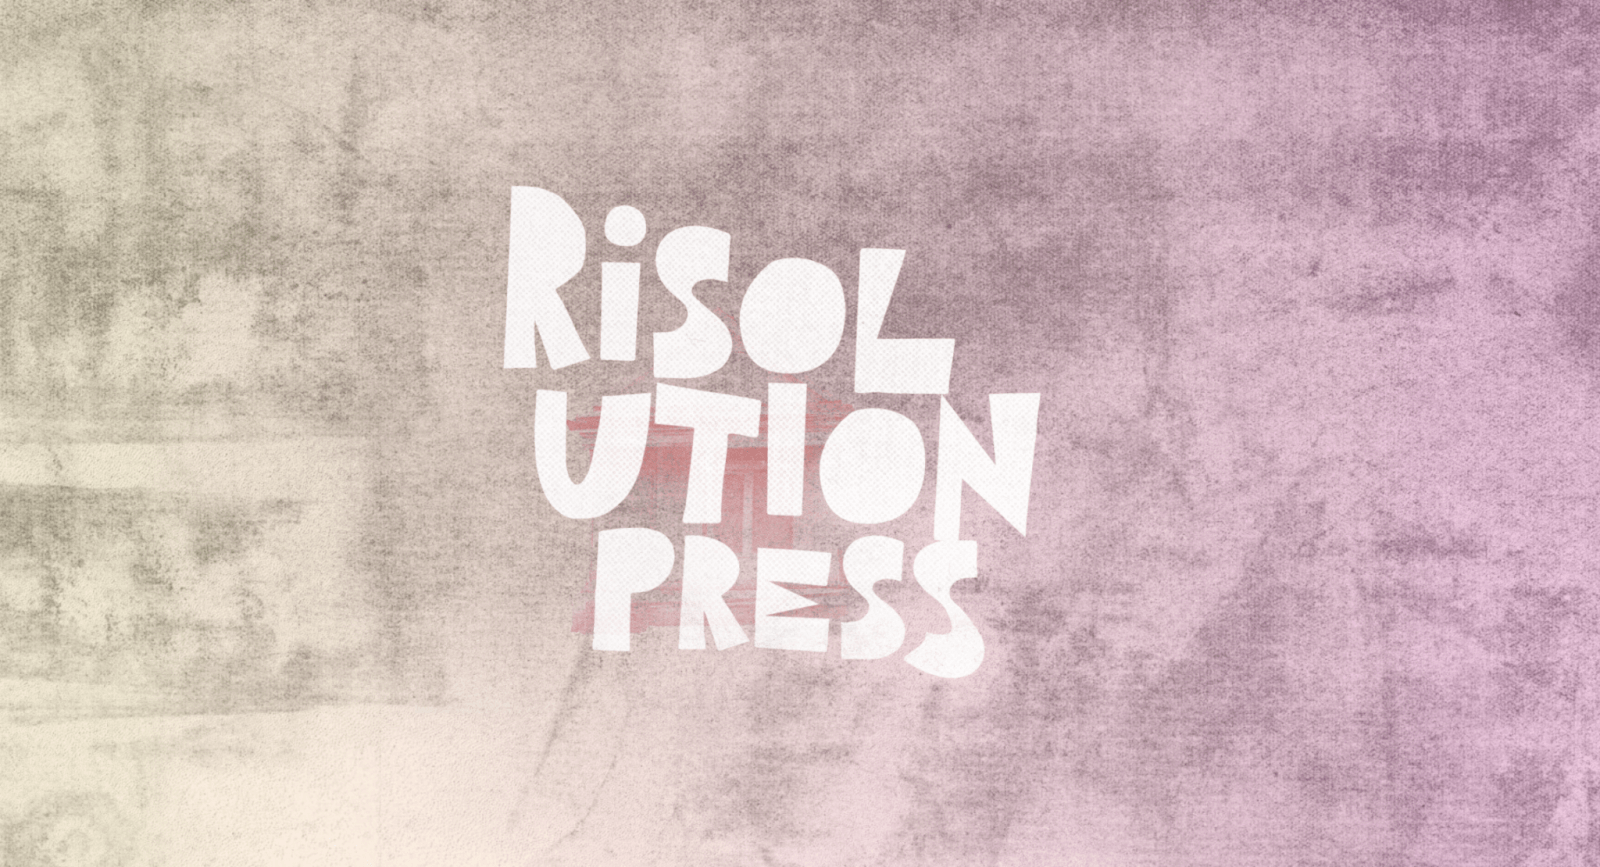 Risolution Press